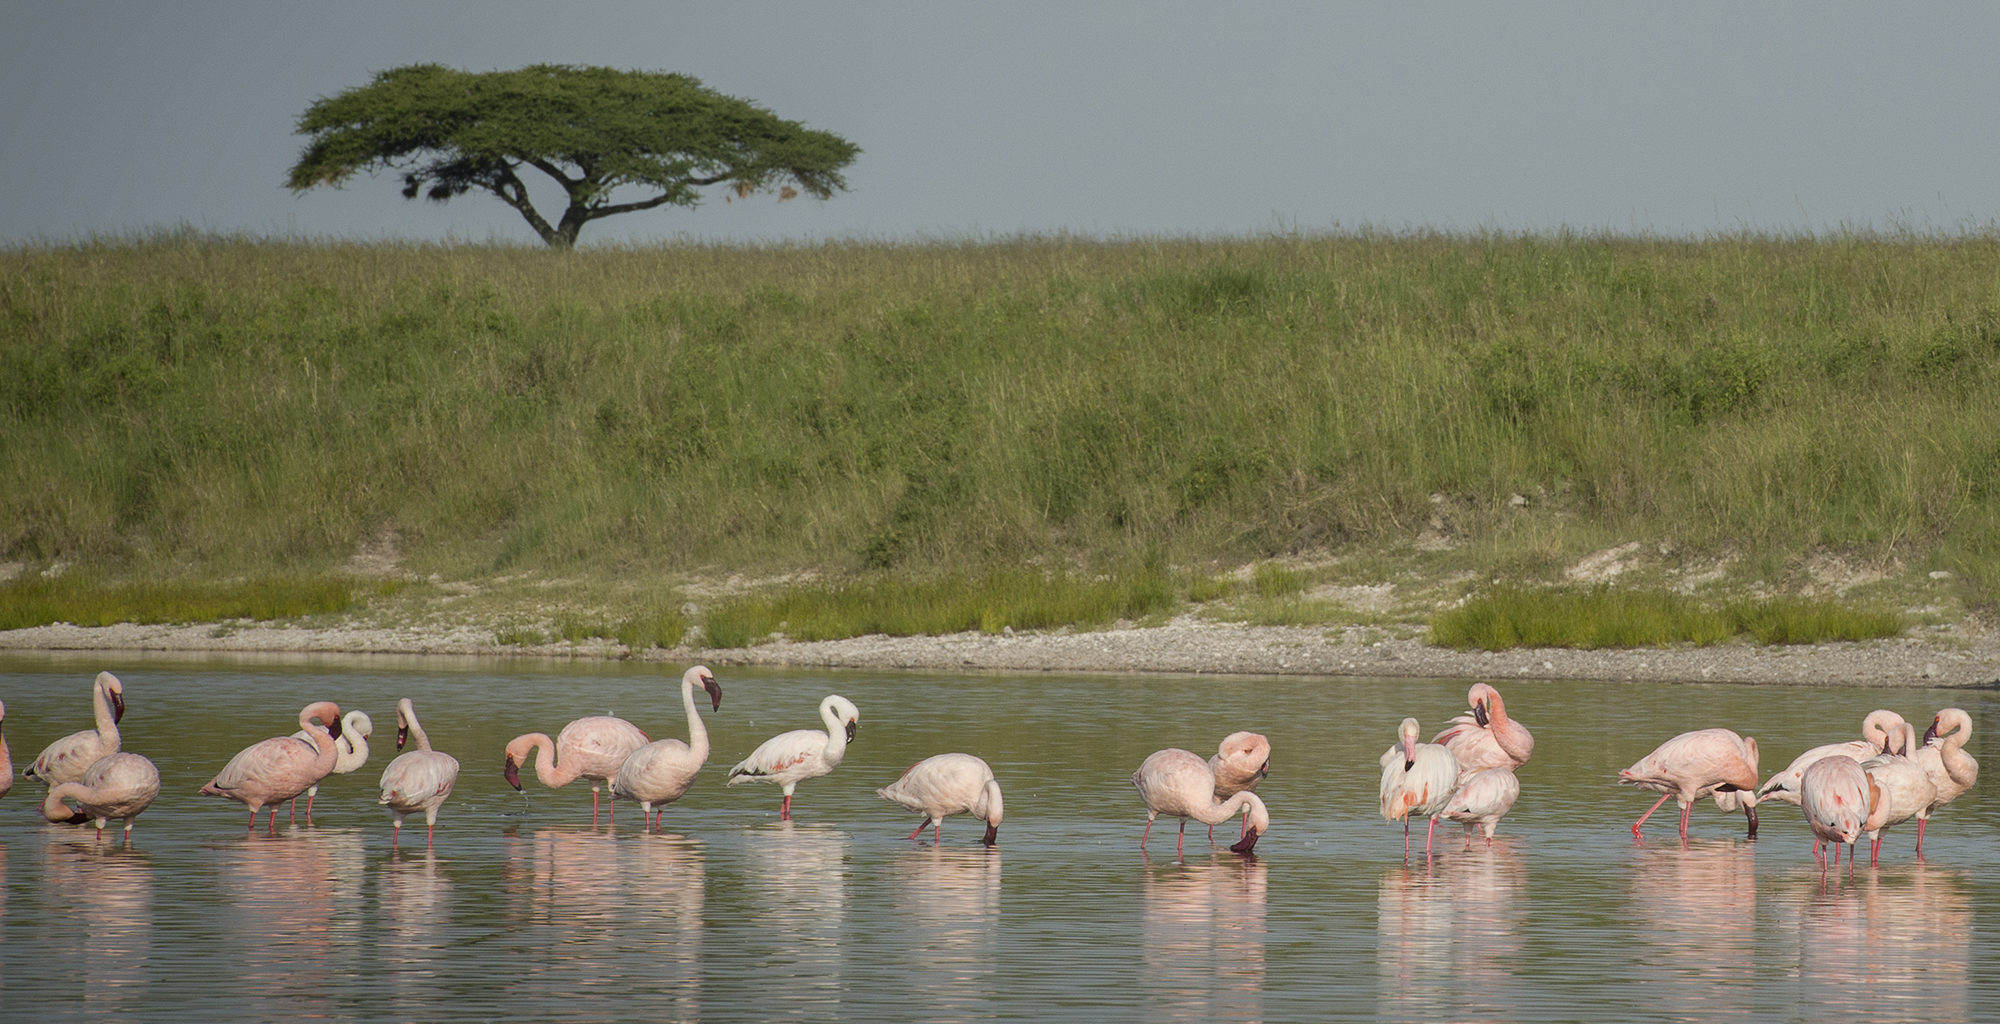 Tanzania-Serengeti-National-Park-Flamingo